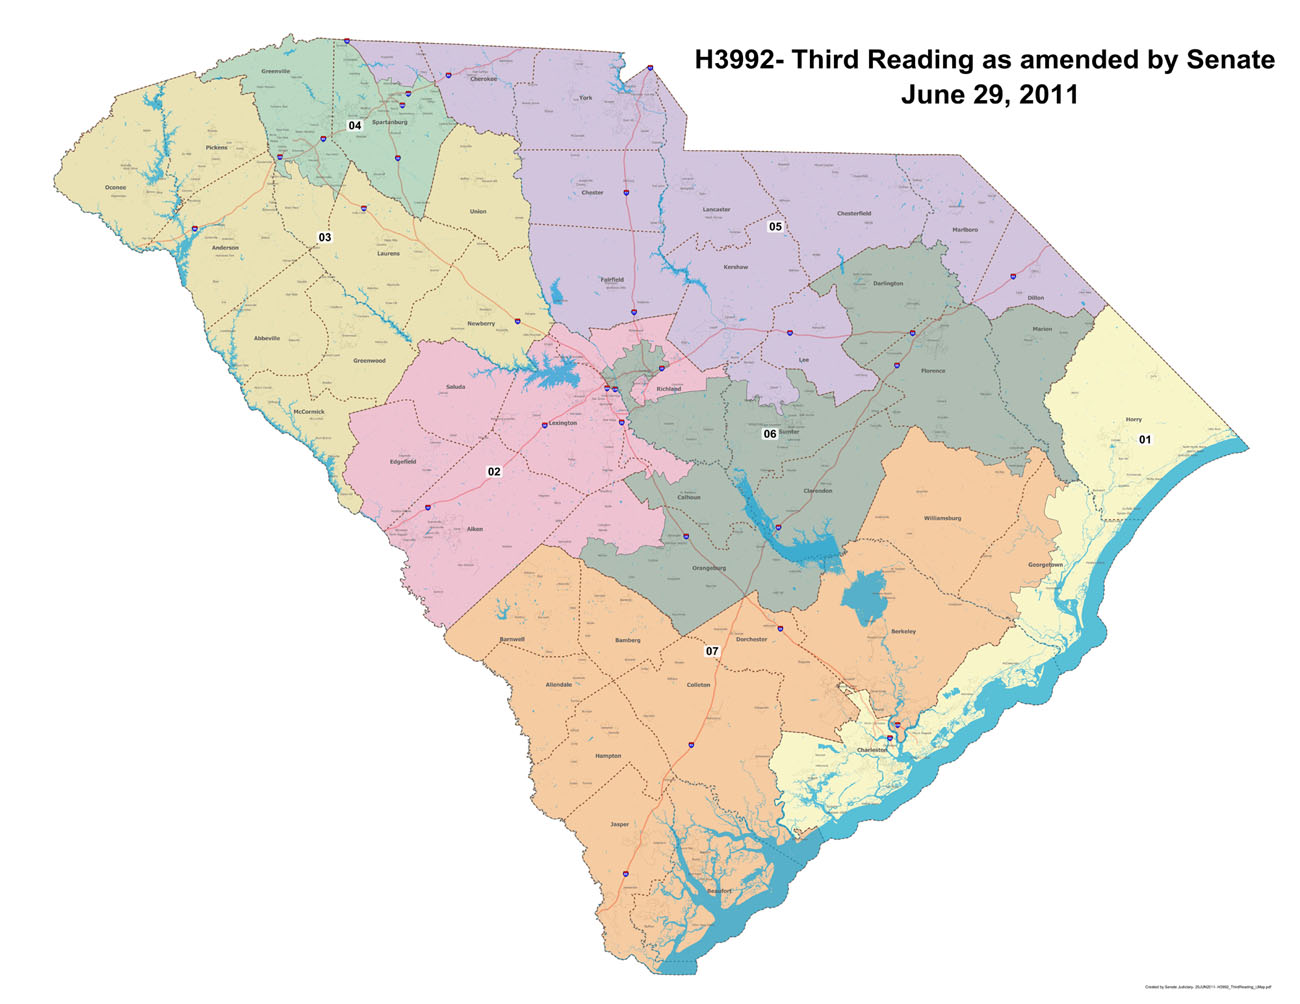 Blogland of Earl Capps: Both redistricting plans will shiftbalance of beaufort county